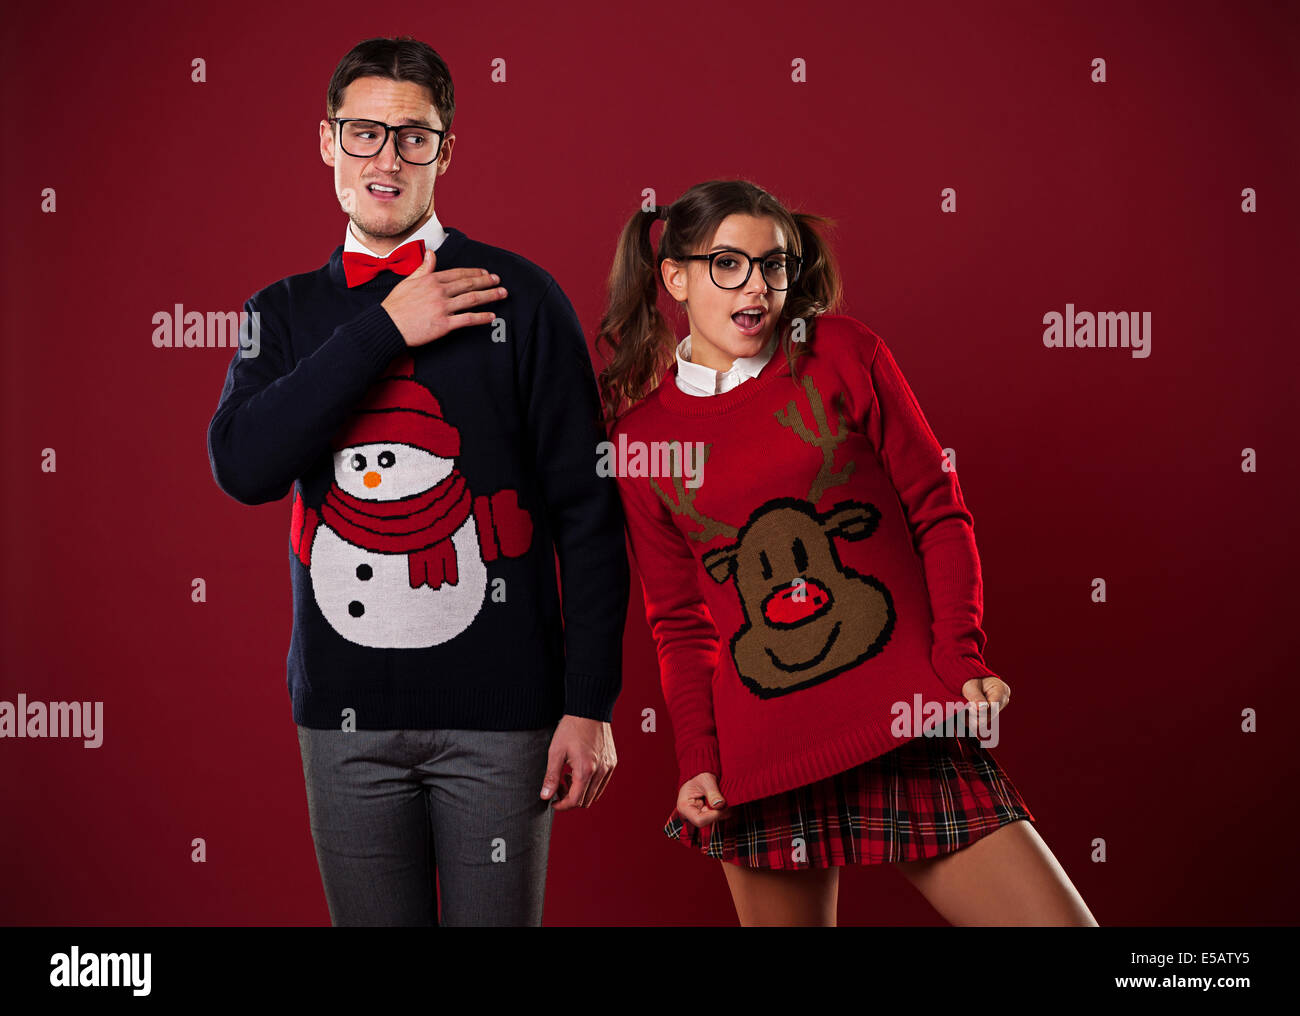 Crazy nerd couple in funny sweaters goofing around Debica, Poland - Stock Image